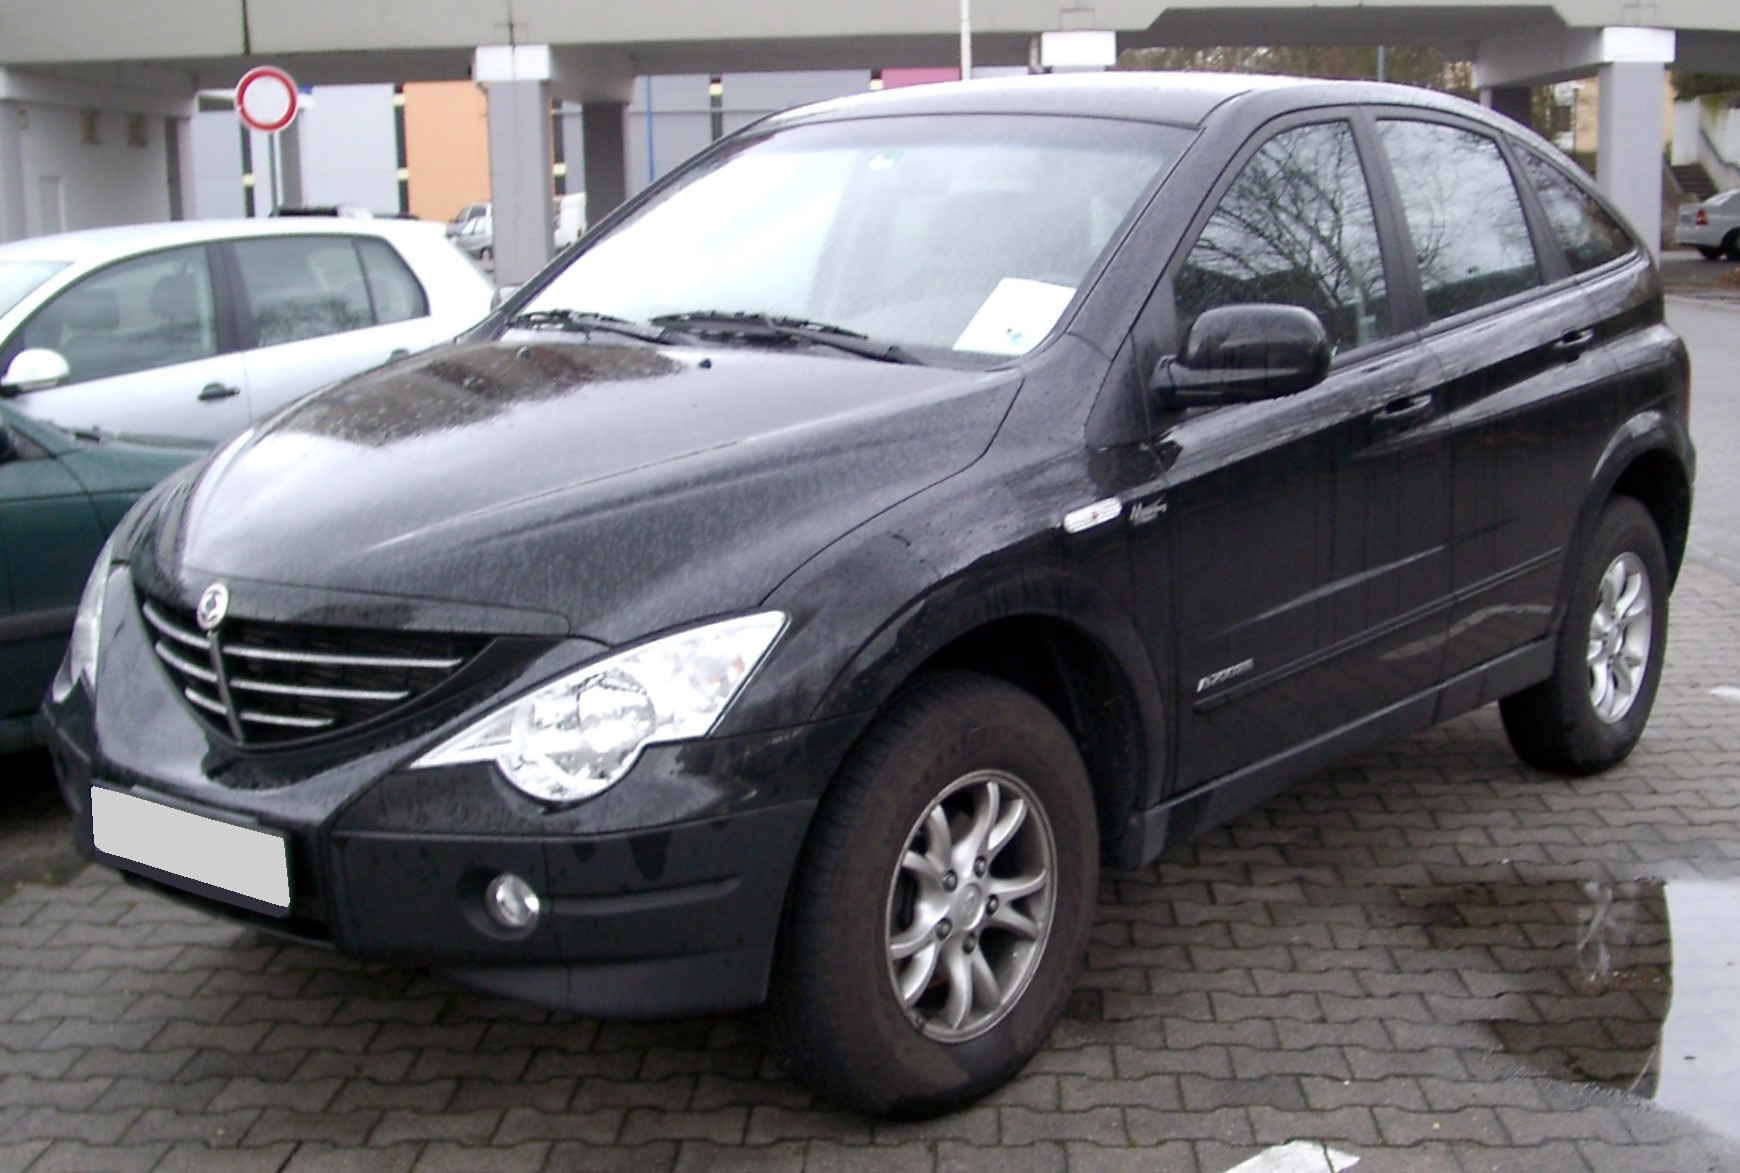 SsangYong_Actyon_front_20080303.jpg